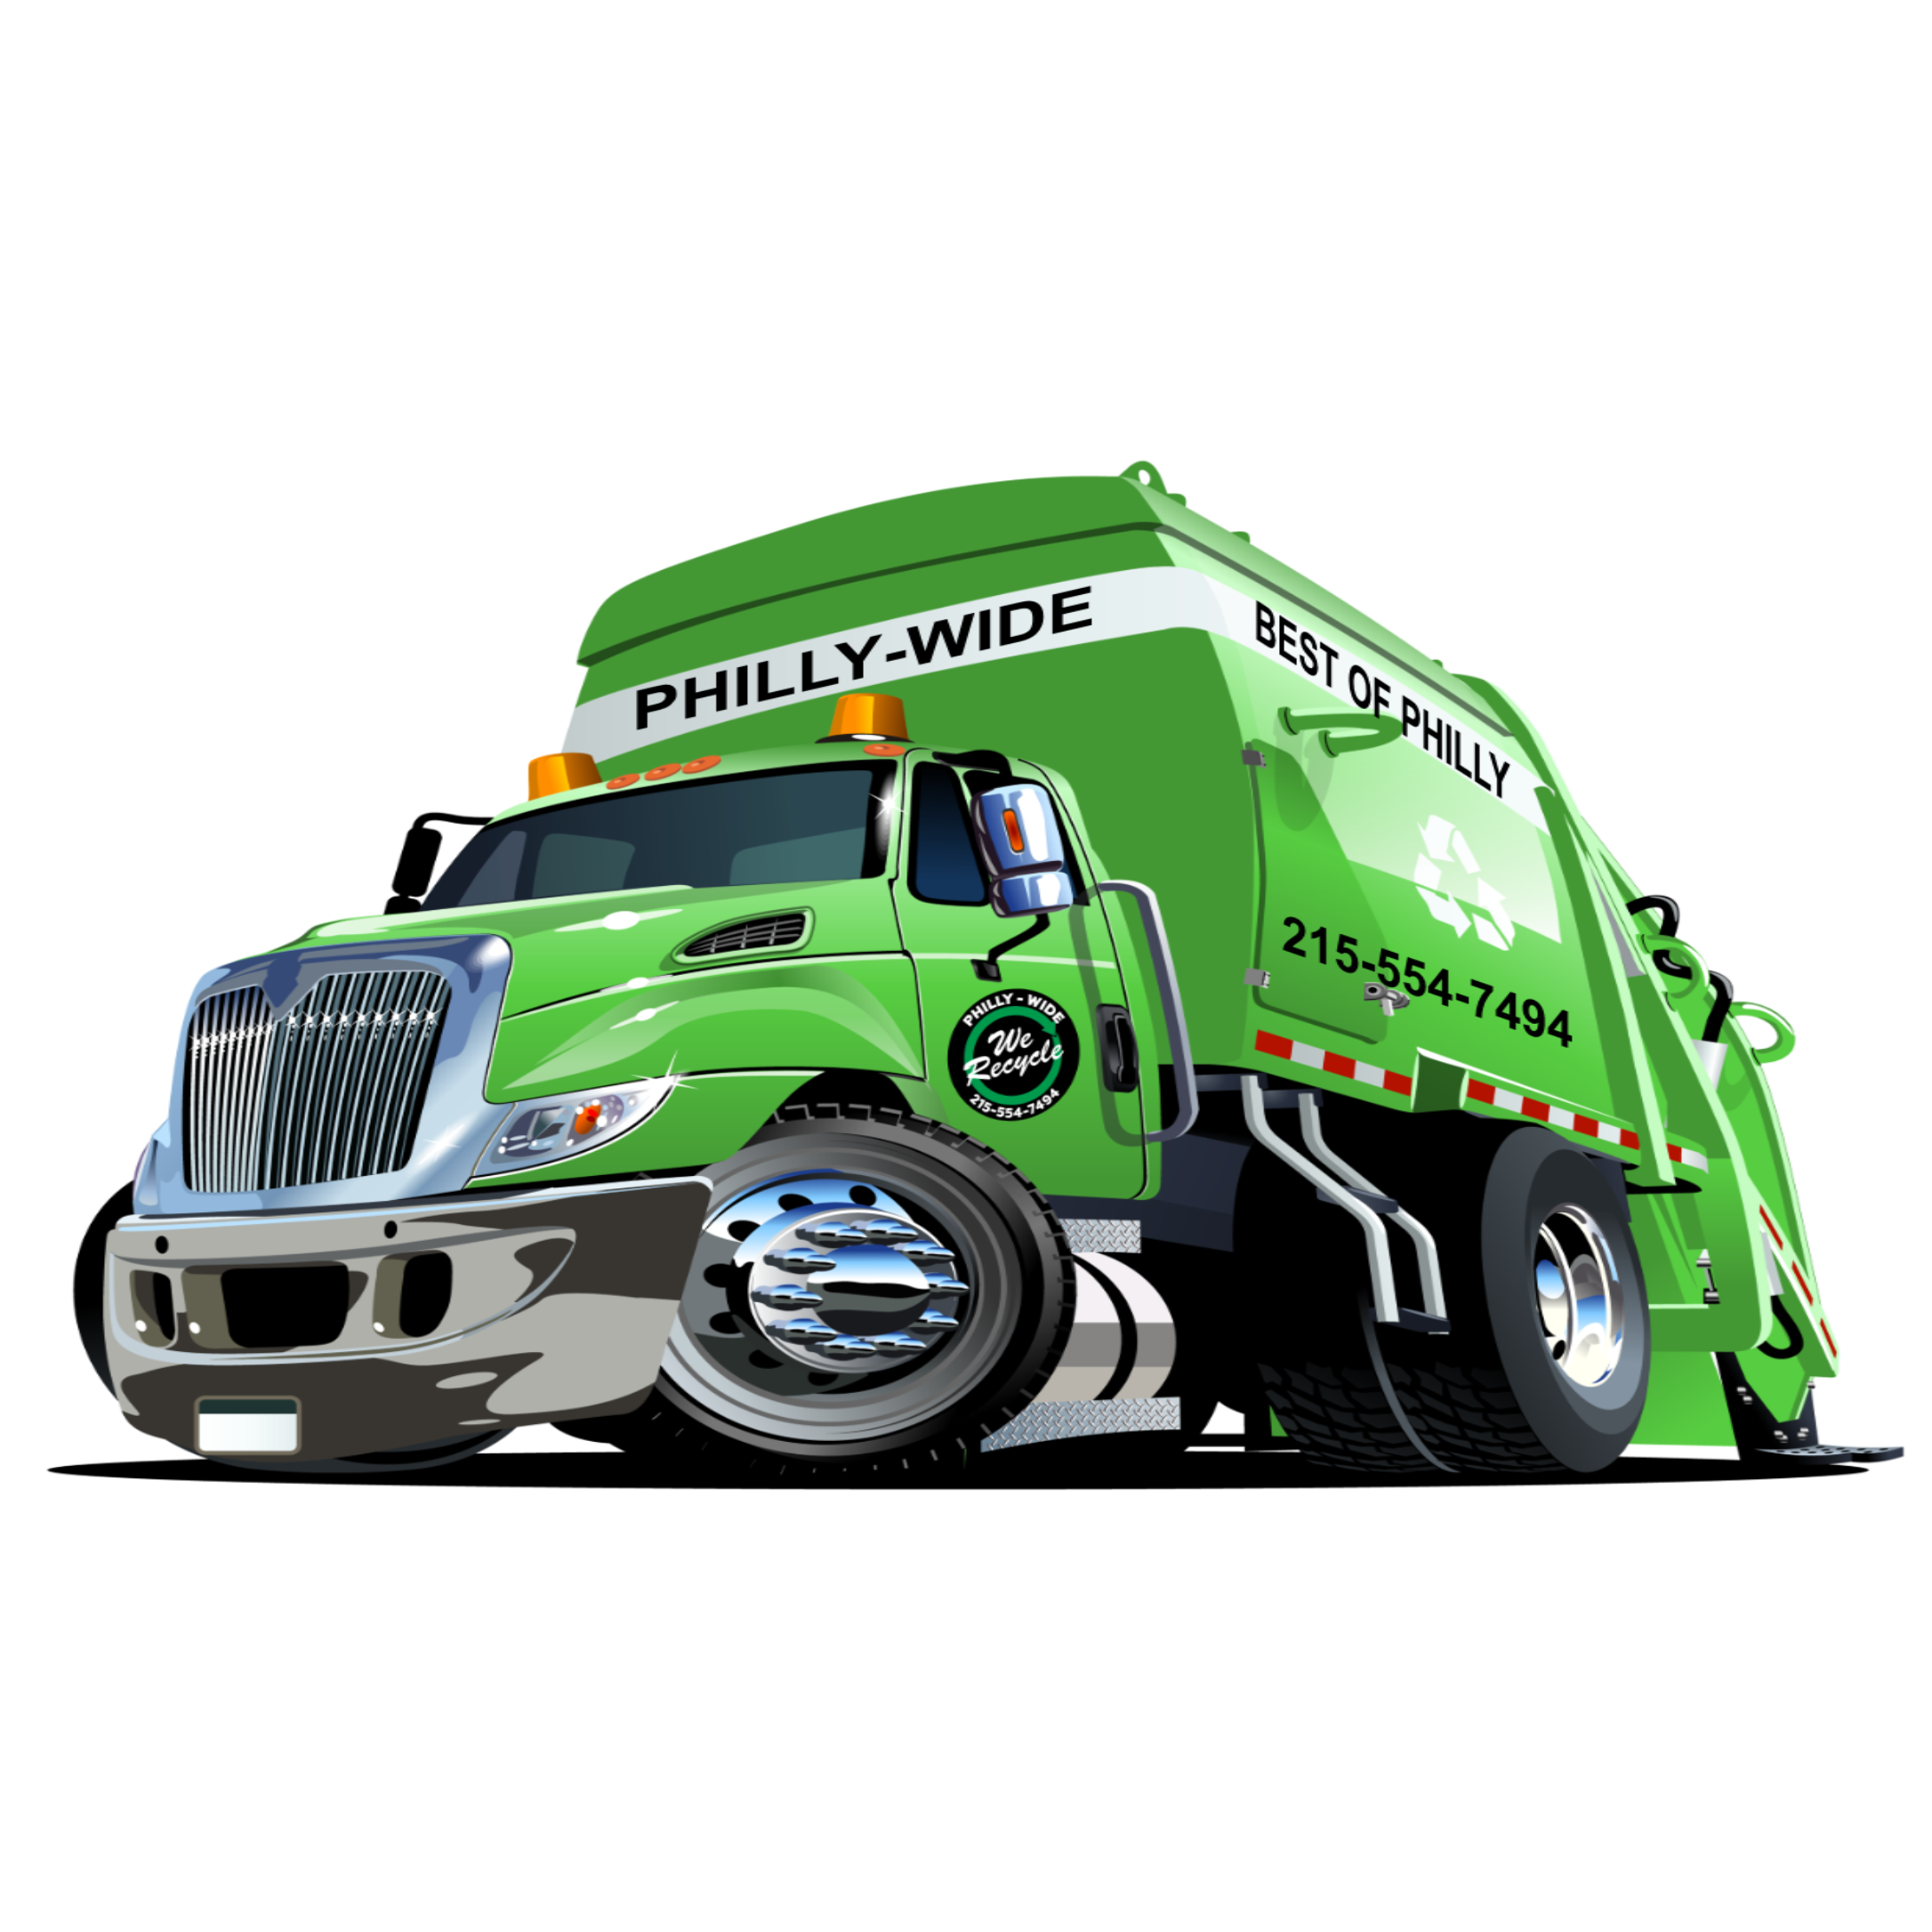 PHILLY*WIDE WASTE- Dumpster Rental Garbage Removal Co. Business Services